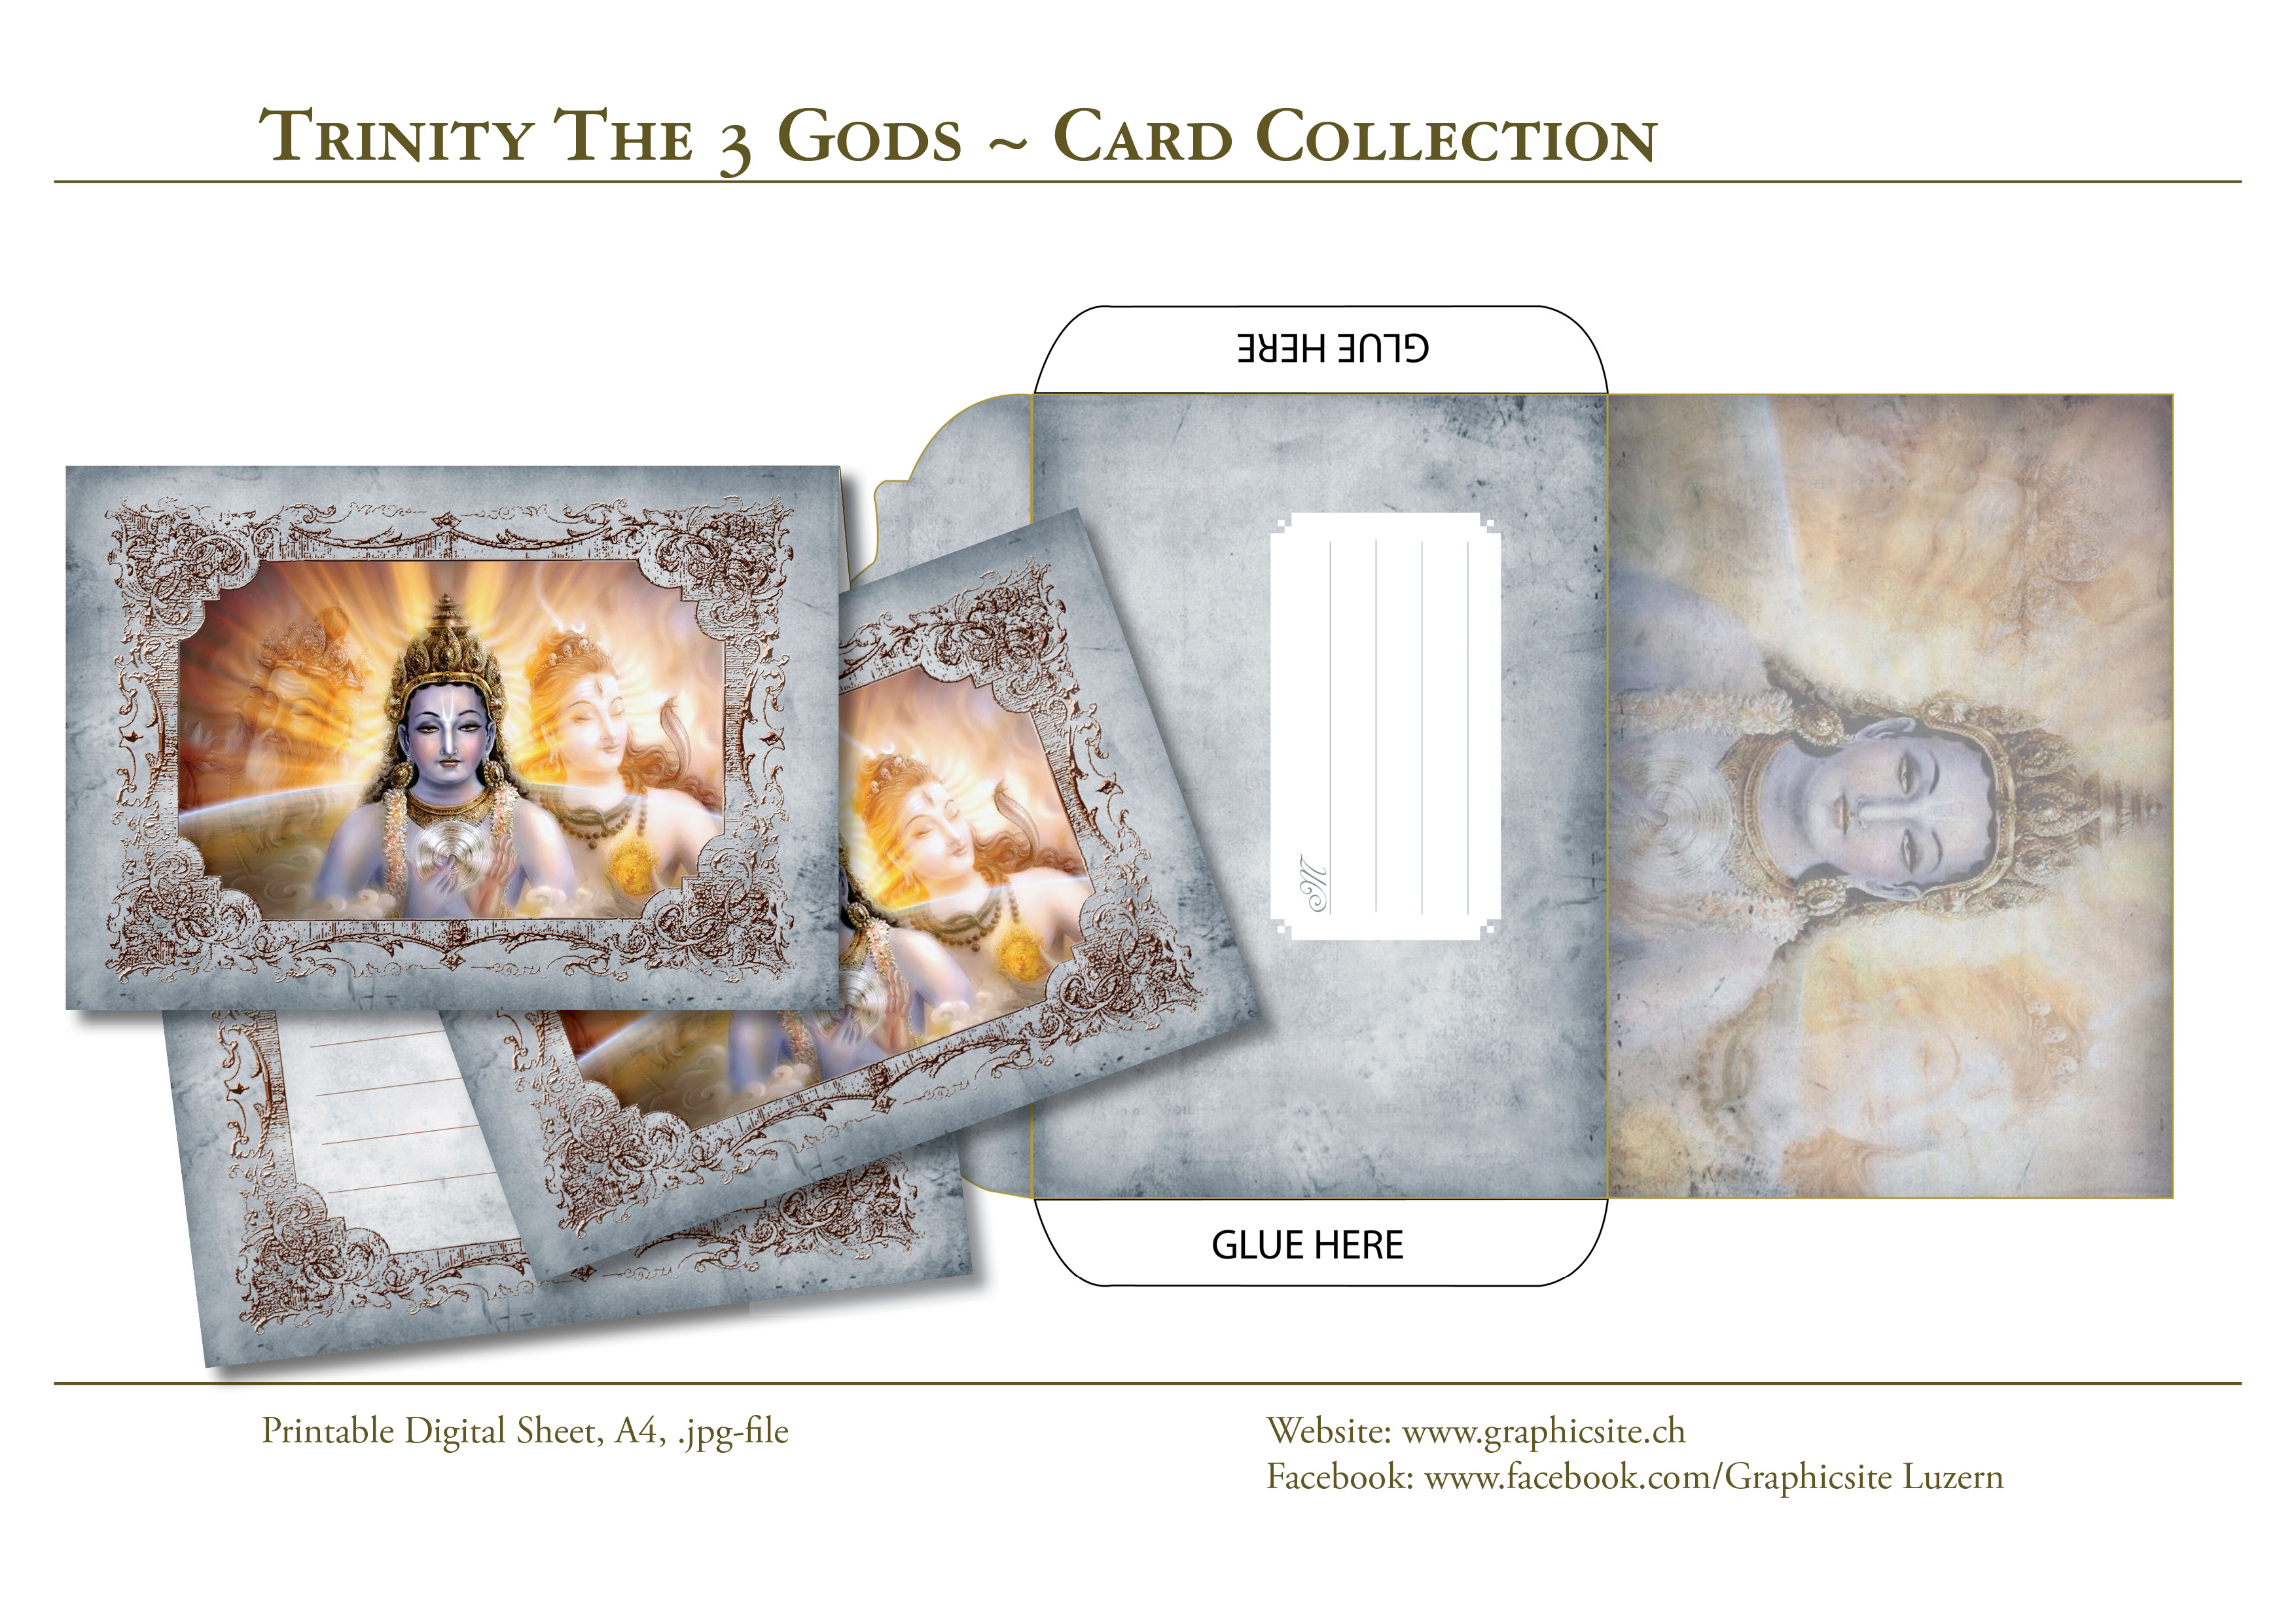 Trinity The 3 Gods - Card Collection DIN A-Formats, Printable Digital Sheets - #greetingcards, #cards, #printable, #envelope, #notecard, #yoga, #meditation, #hinduism, #india,